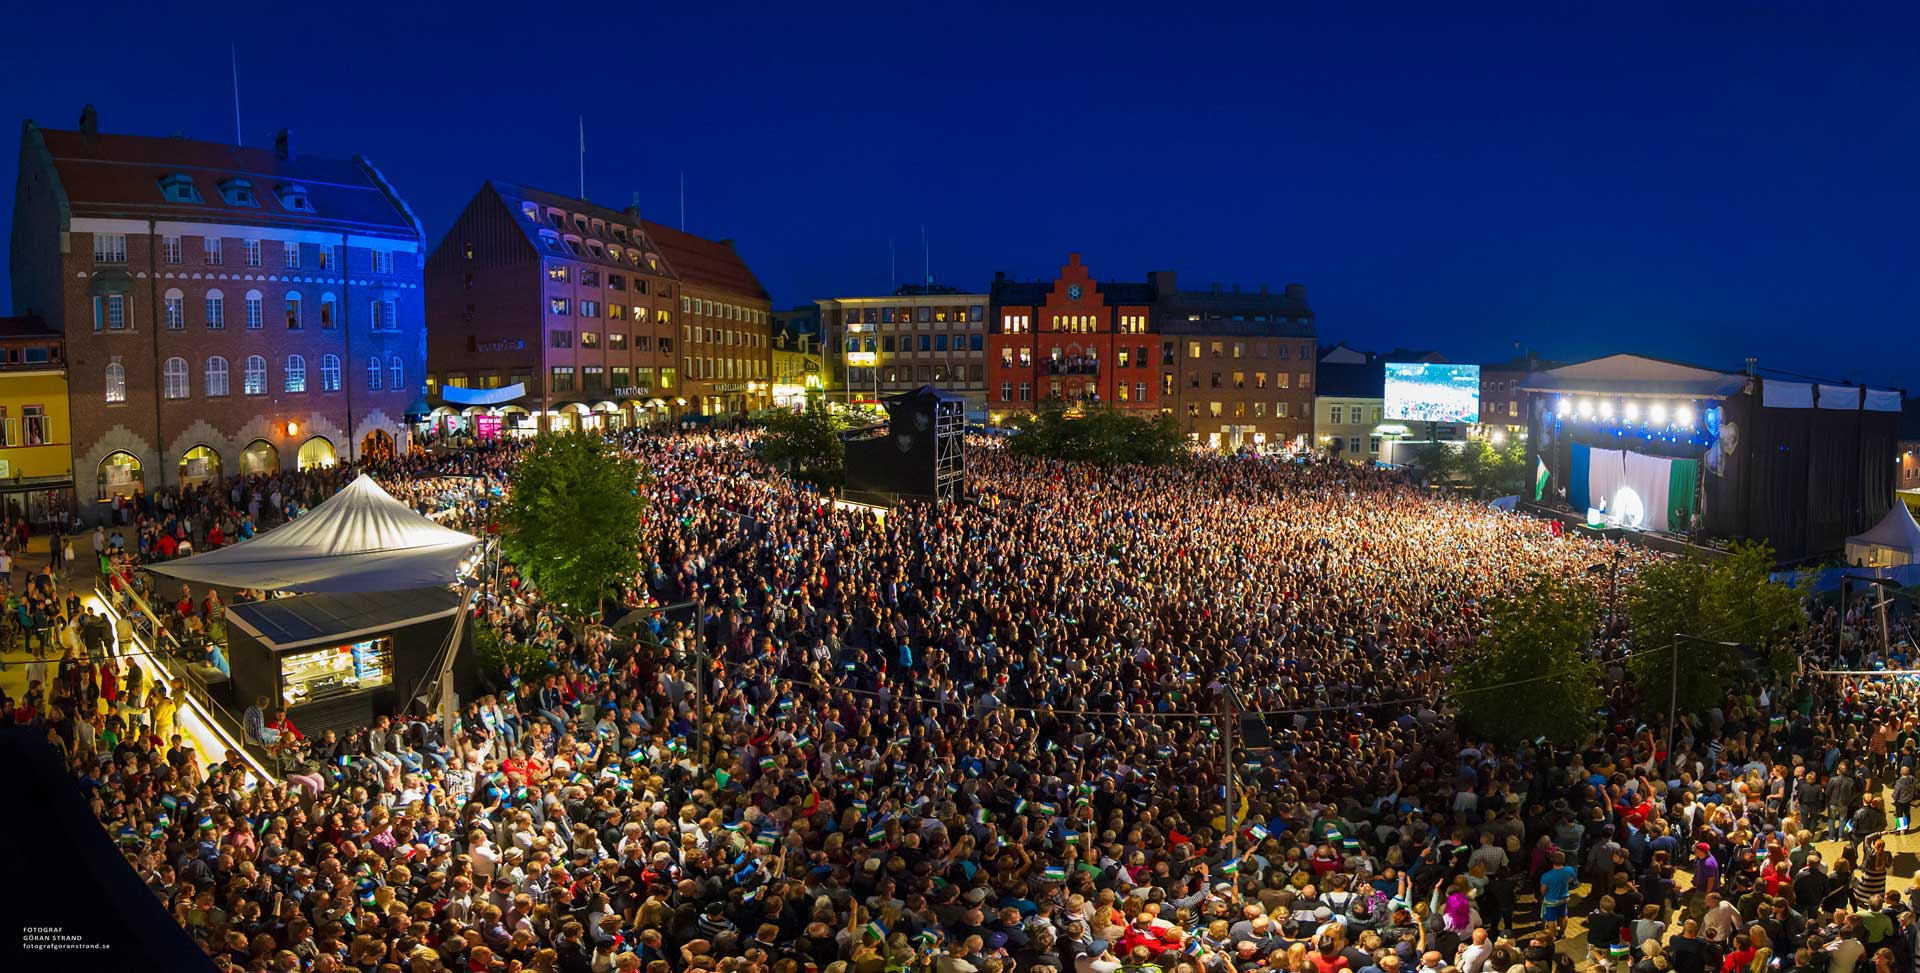 Storsjöyran, Sweden´s oldest city music festival. Photo: Göran Strand